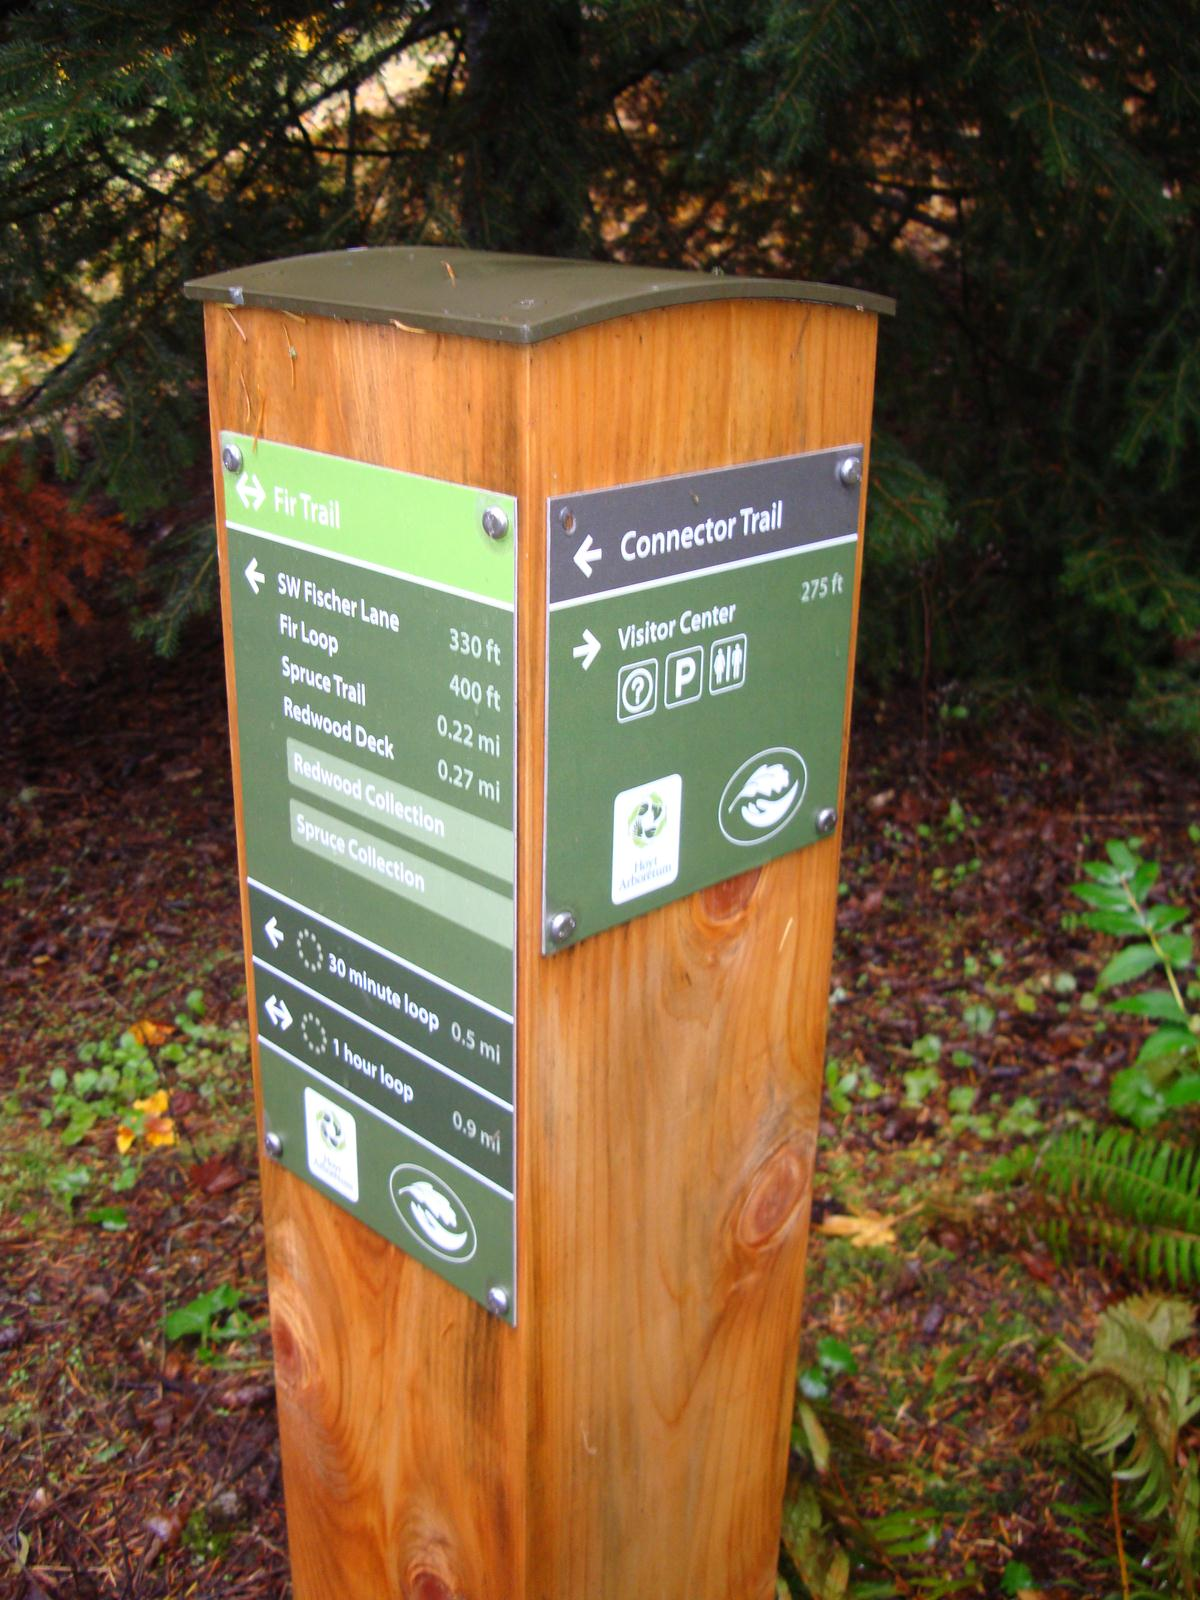 One of the new trail markers at Hoyt Arboretum.